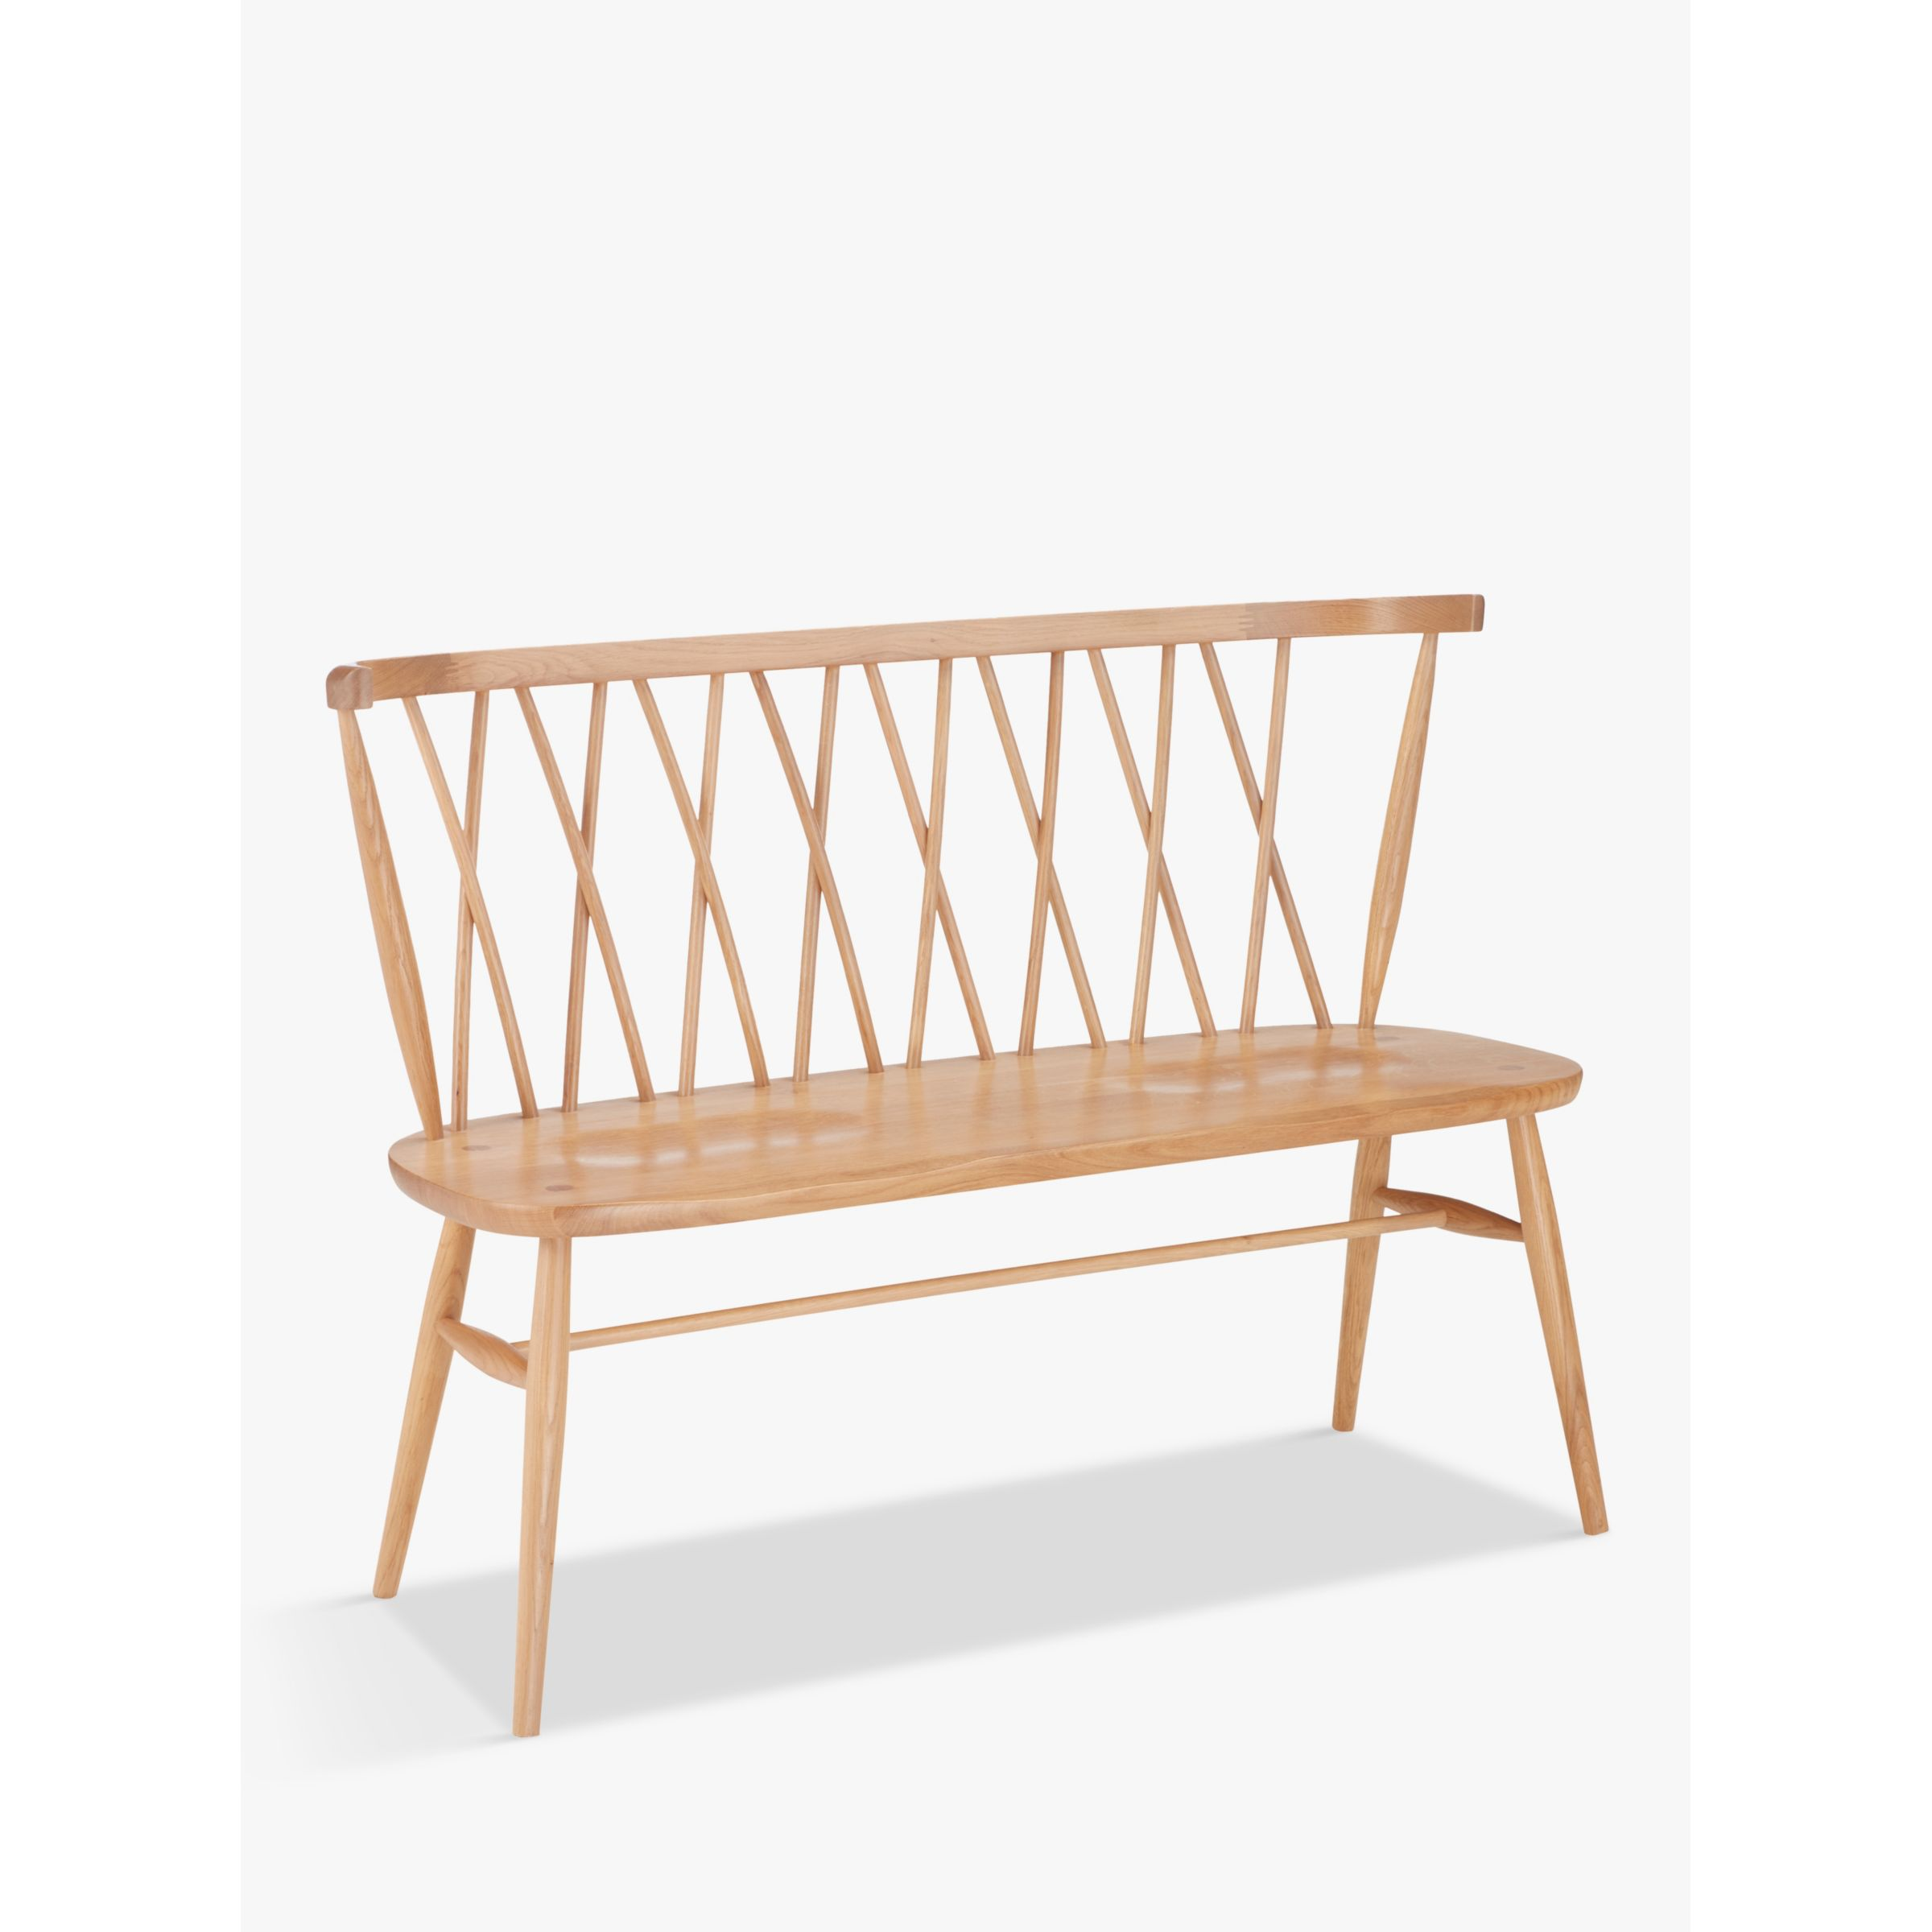 ercol for John Lewis ercol for John Lewis Shalstone 2 Seater Dining Bench, Oak